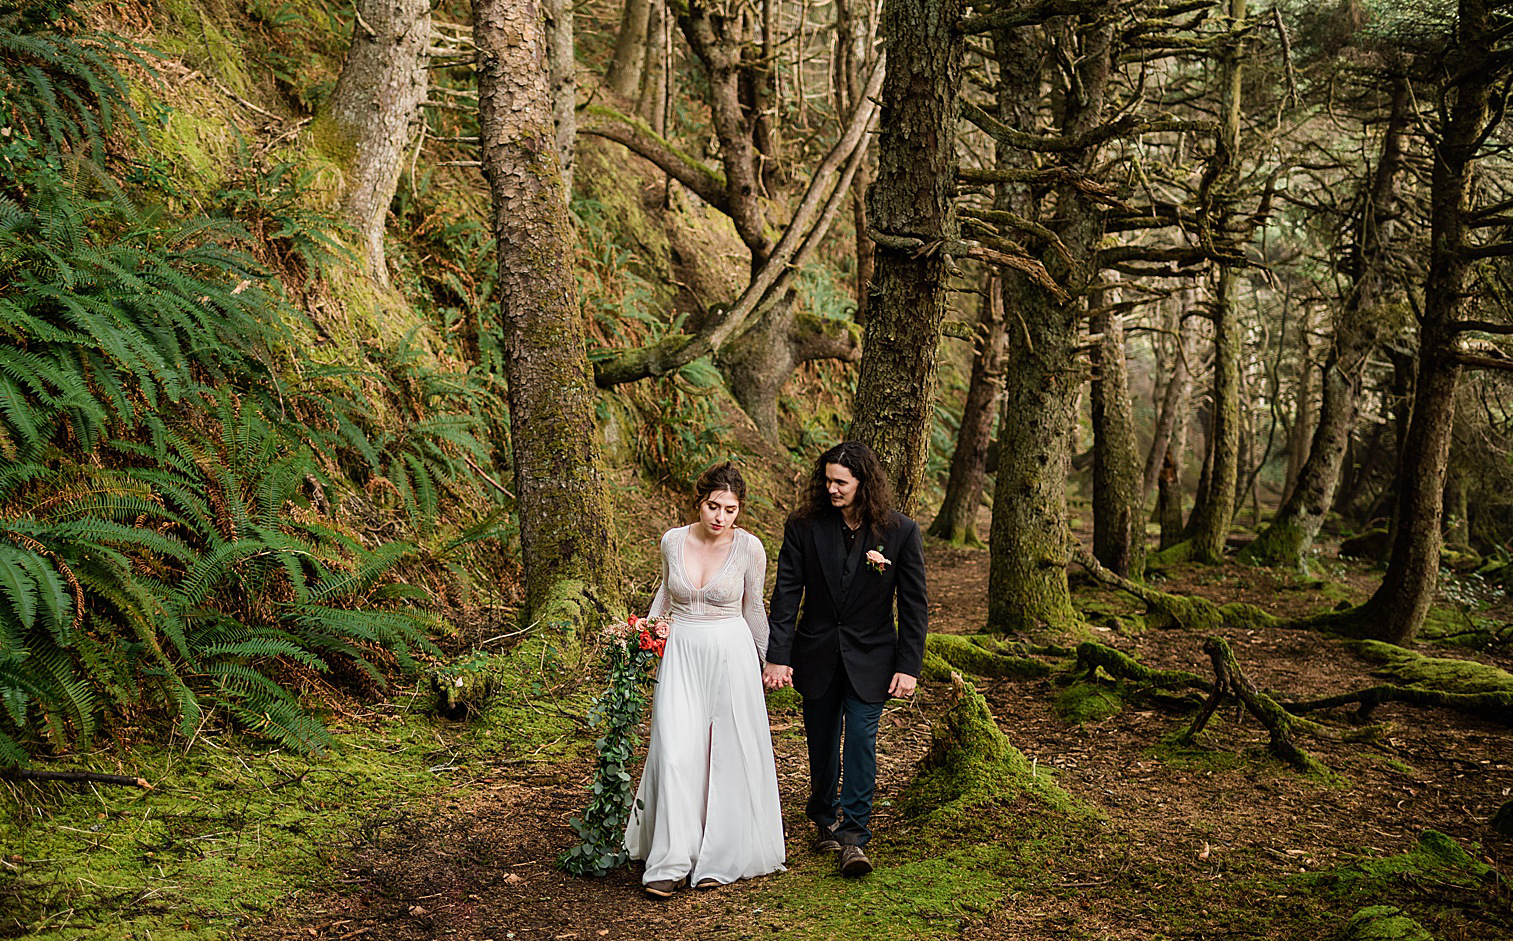 Bride and groom walking along the wooded Shi Shi beach trail. Image by Forthright Photo.